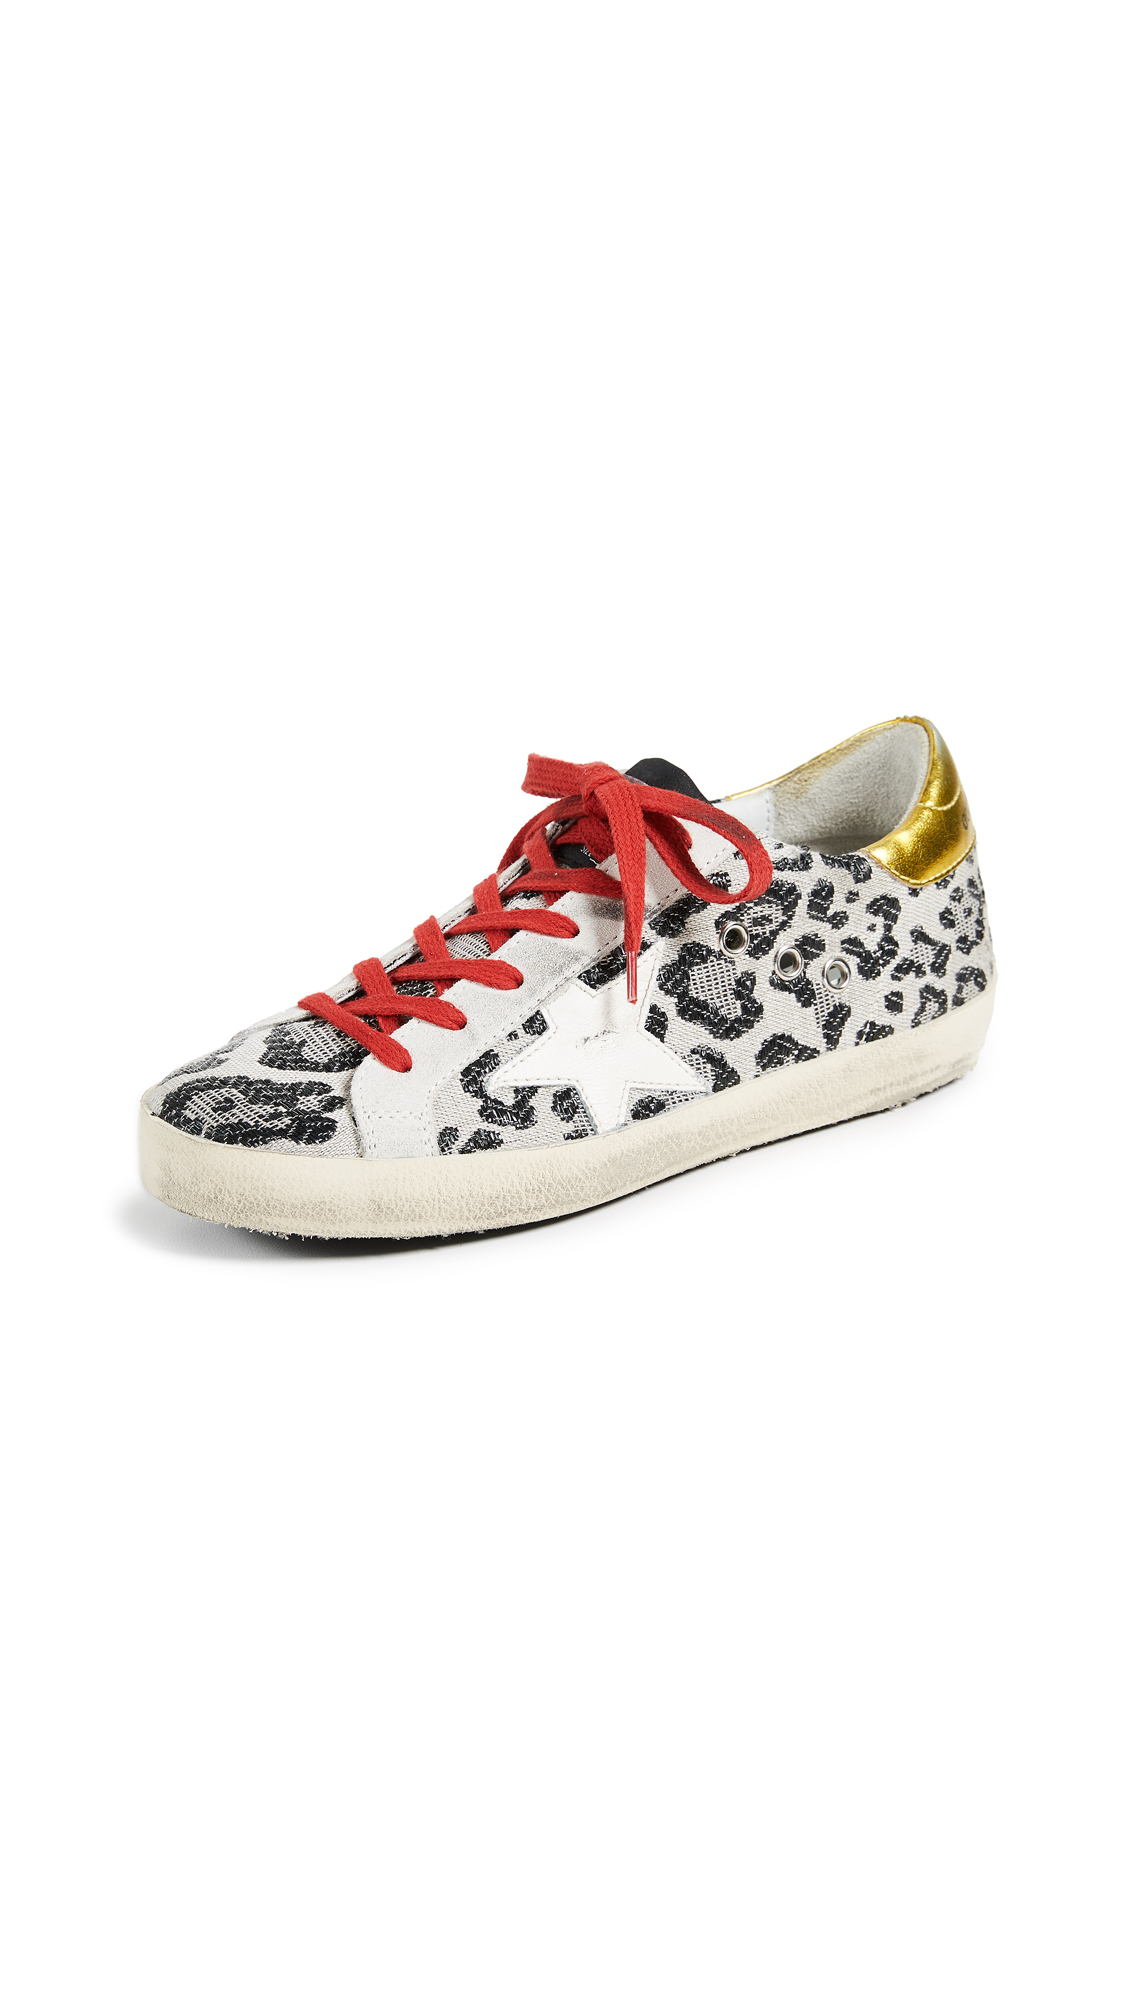 Golden Goose Superstar Sneakers - Black Leopard/Cream